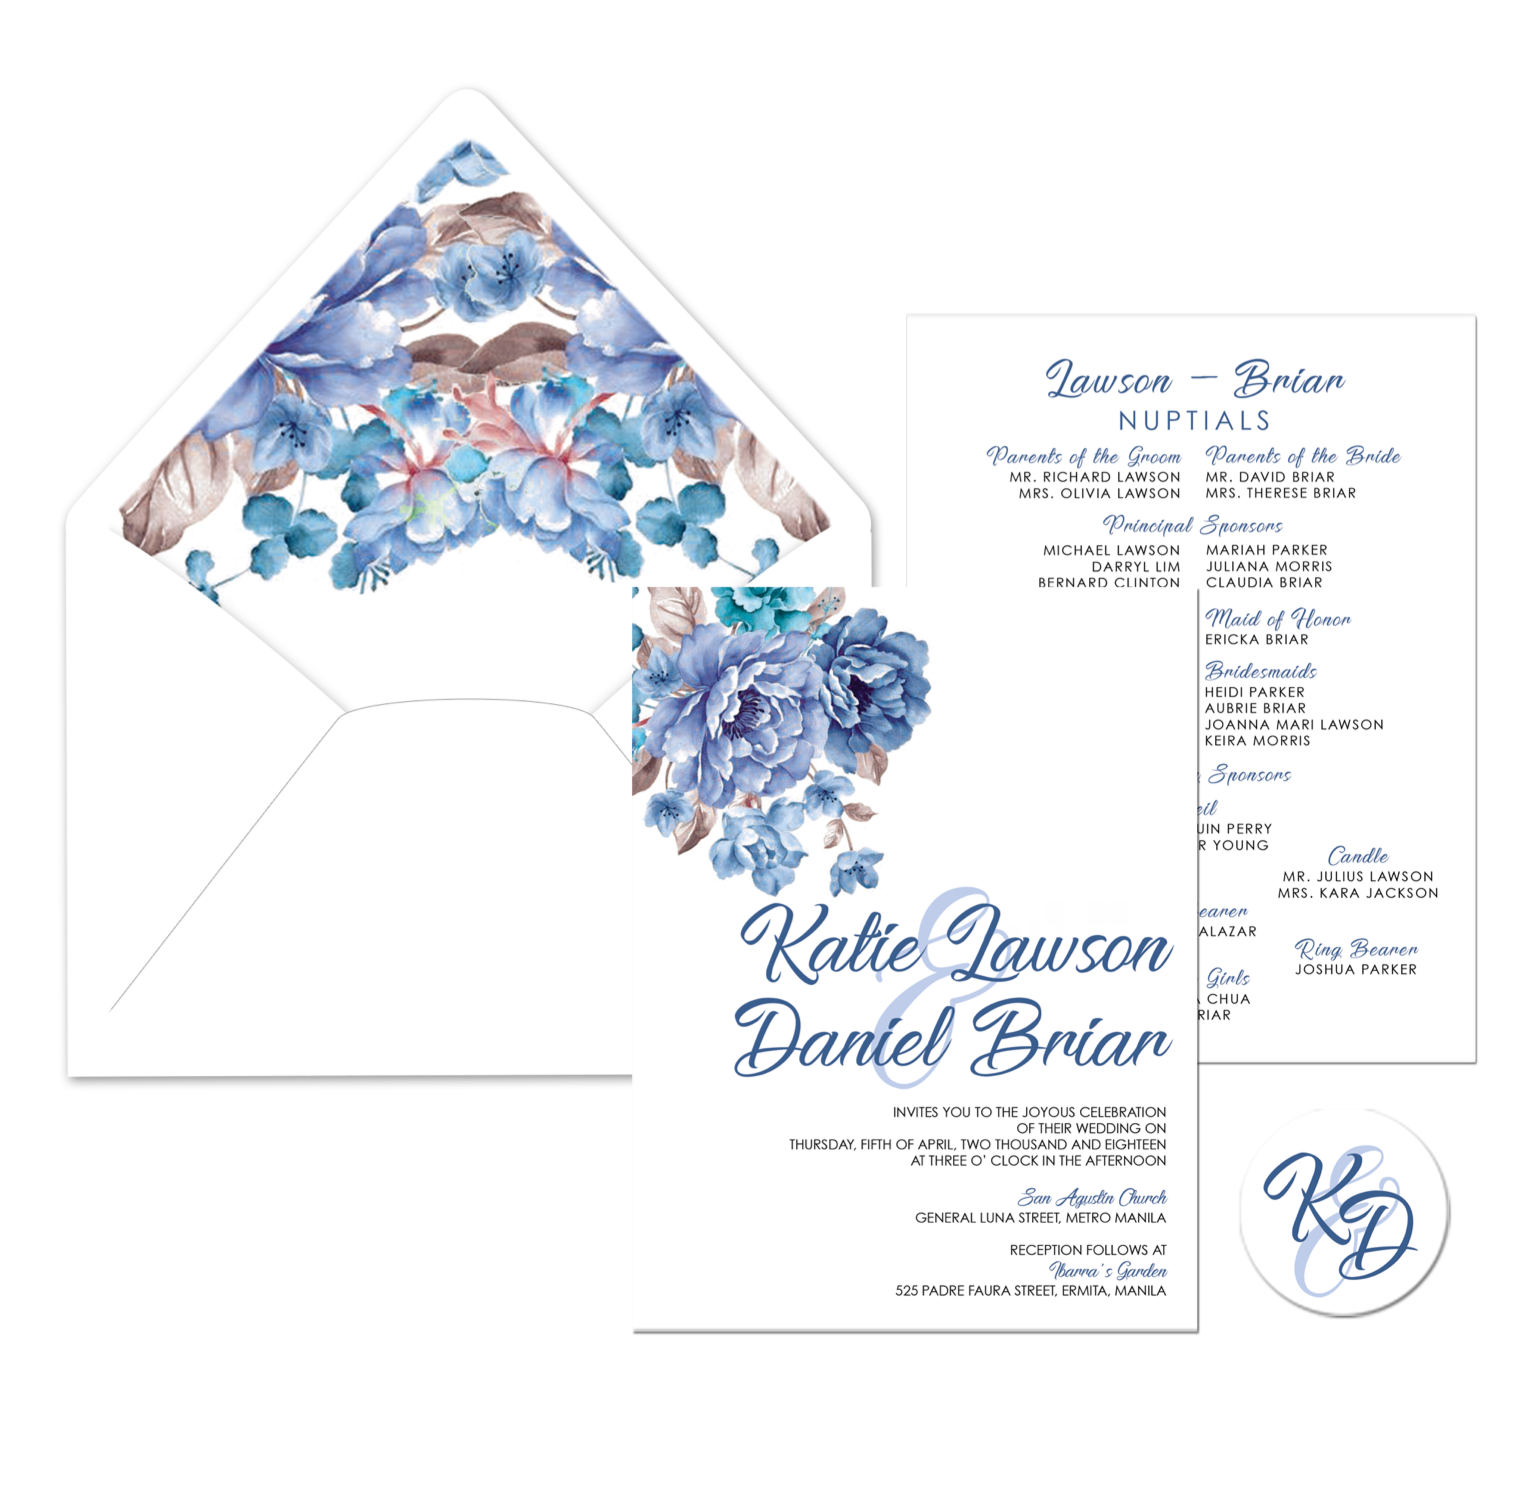 Ela Wedding Invitation